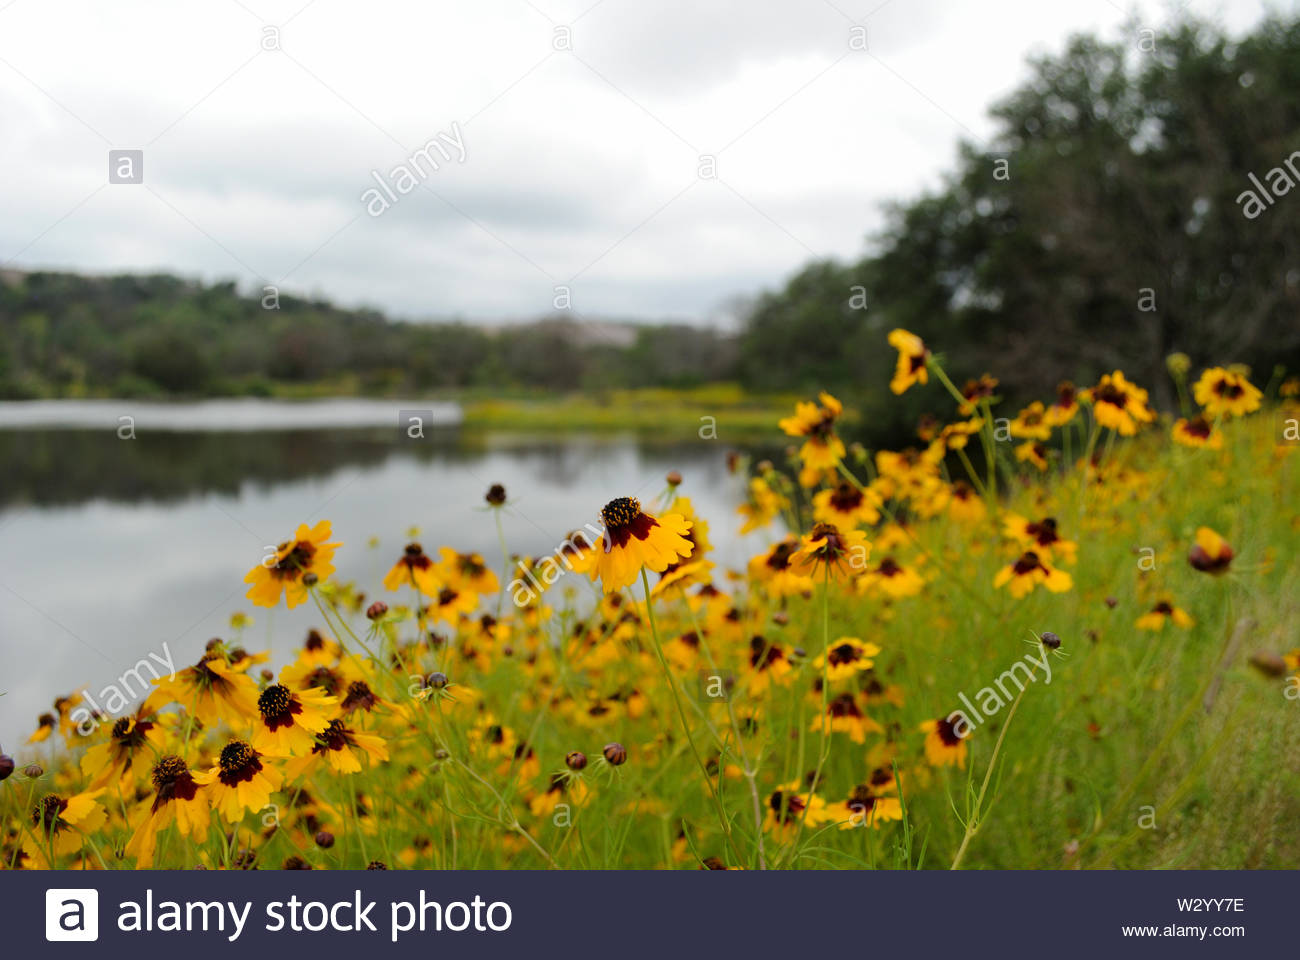 Soft Background. Yellow Wildflowers and Soft Background. Texas Hill Country Wildflowers and Pond with Blurred Background. Enchanted Rock Texas USA. - Stock Image